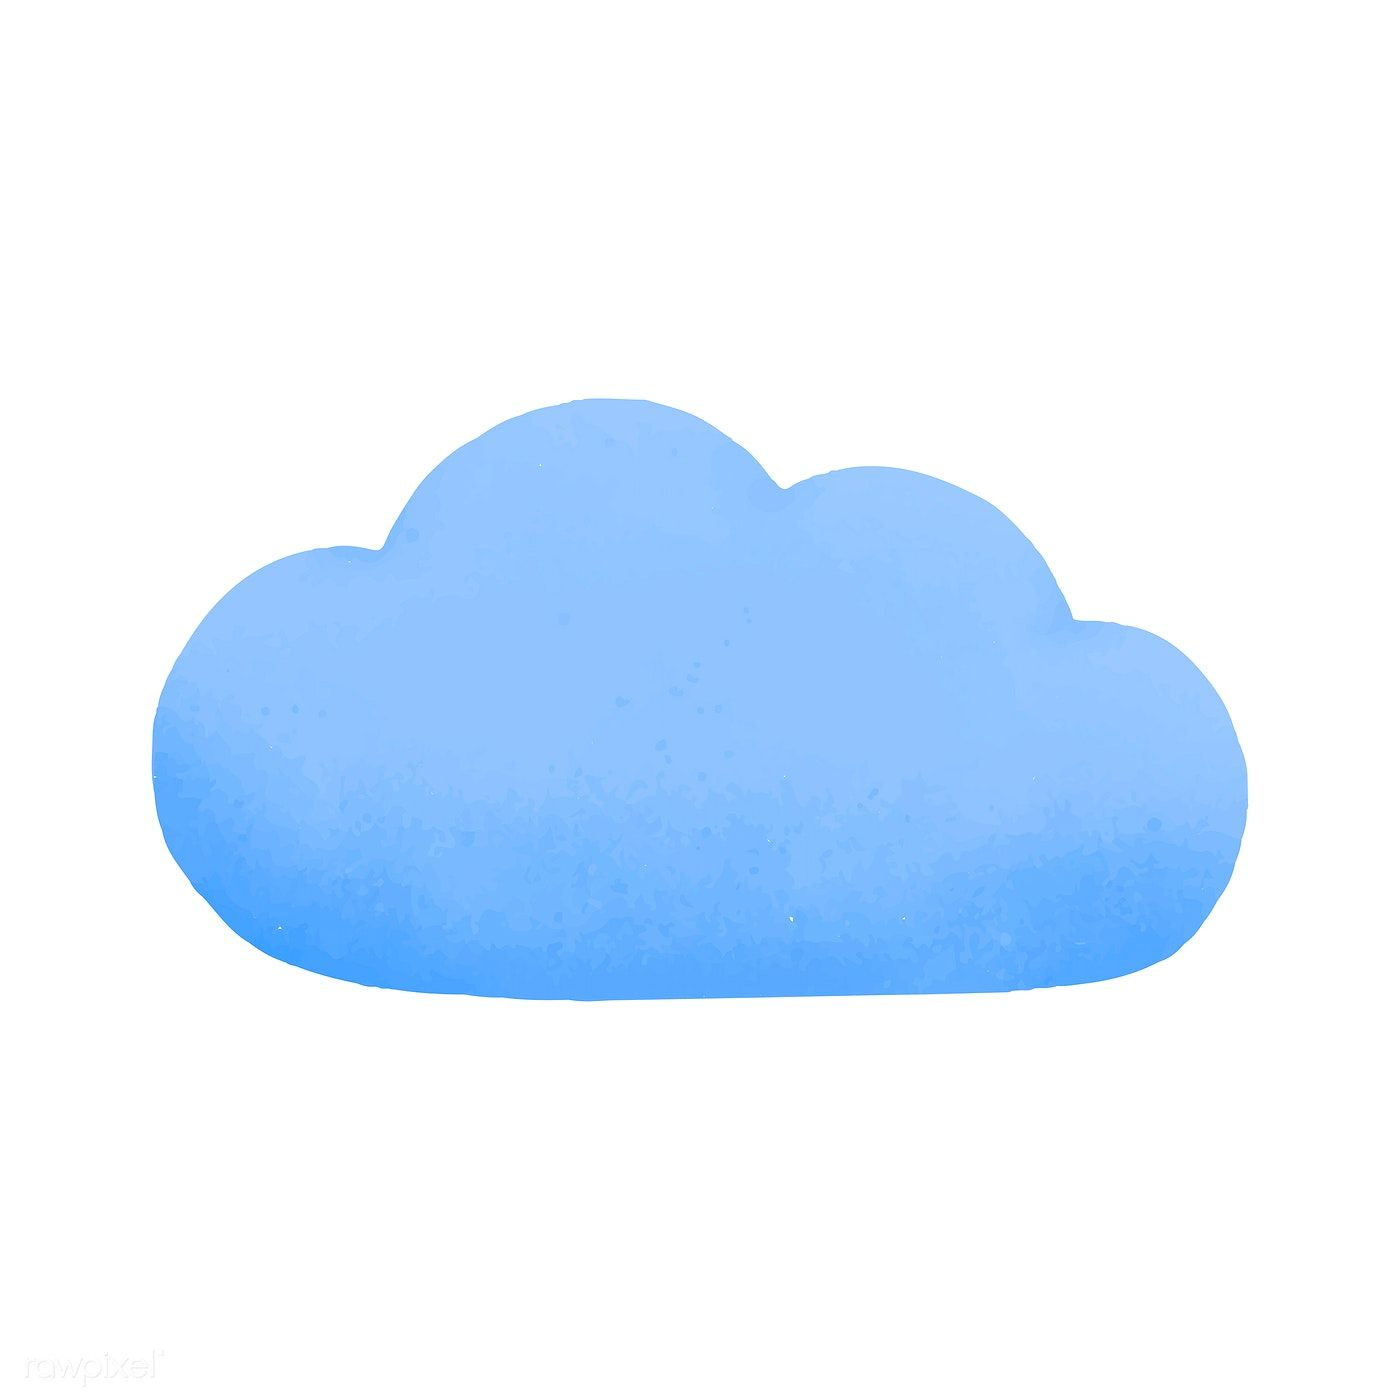 Cloud Social Media Icon Vector Free Image By Rawpixel Com Aum Social Media Icons Vector Social Media Icons Vector Free